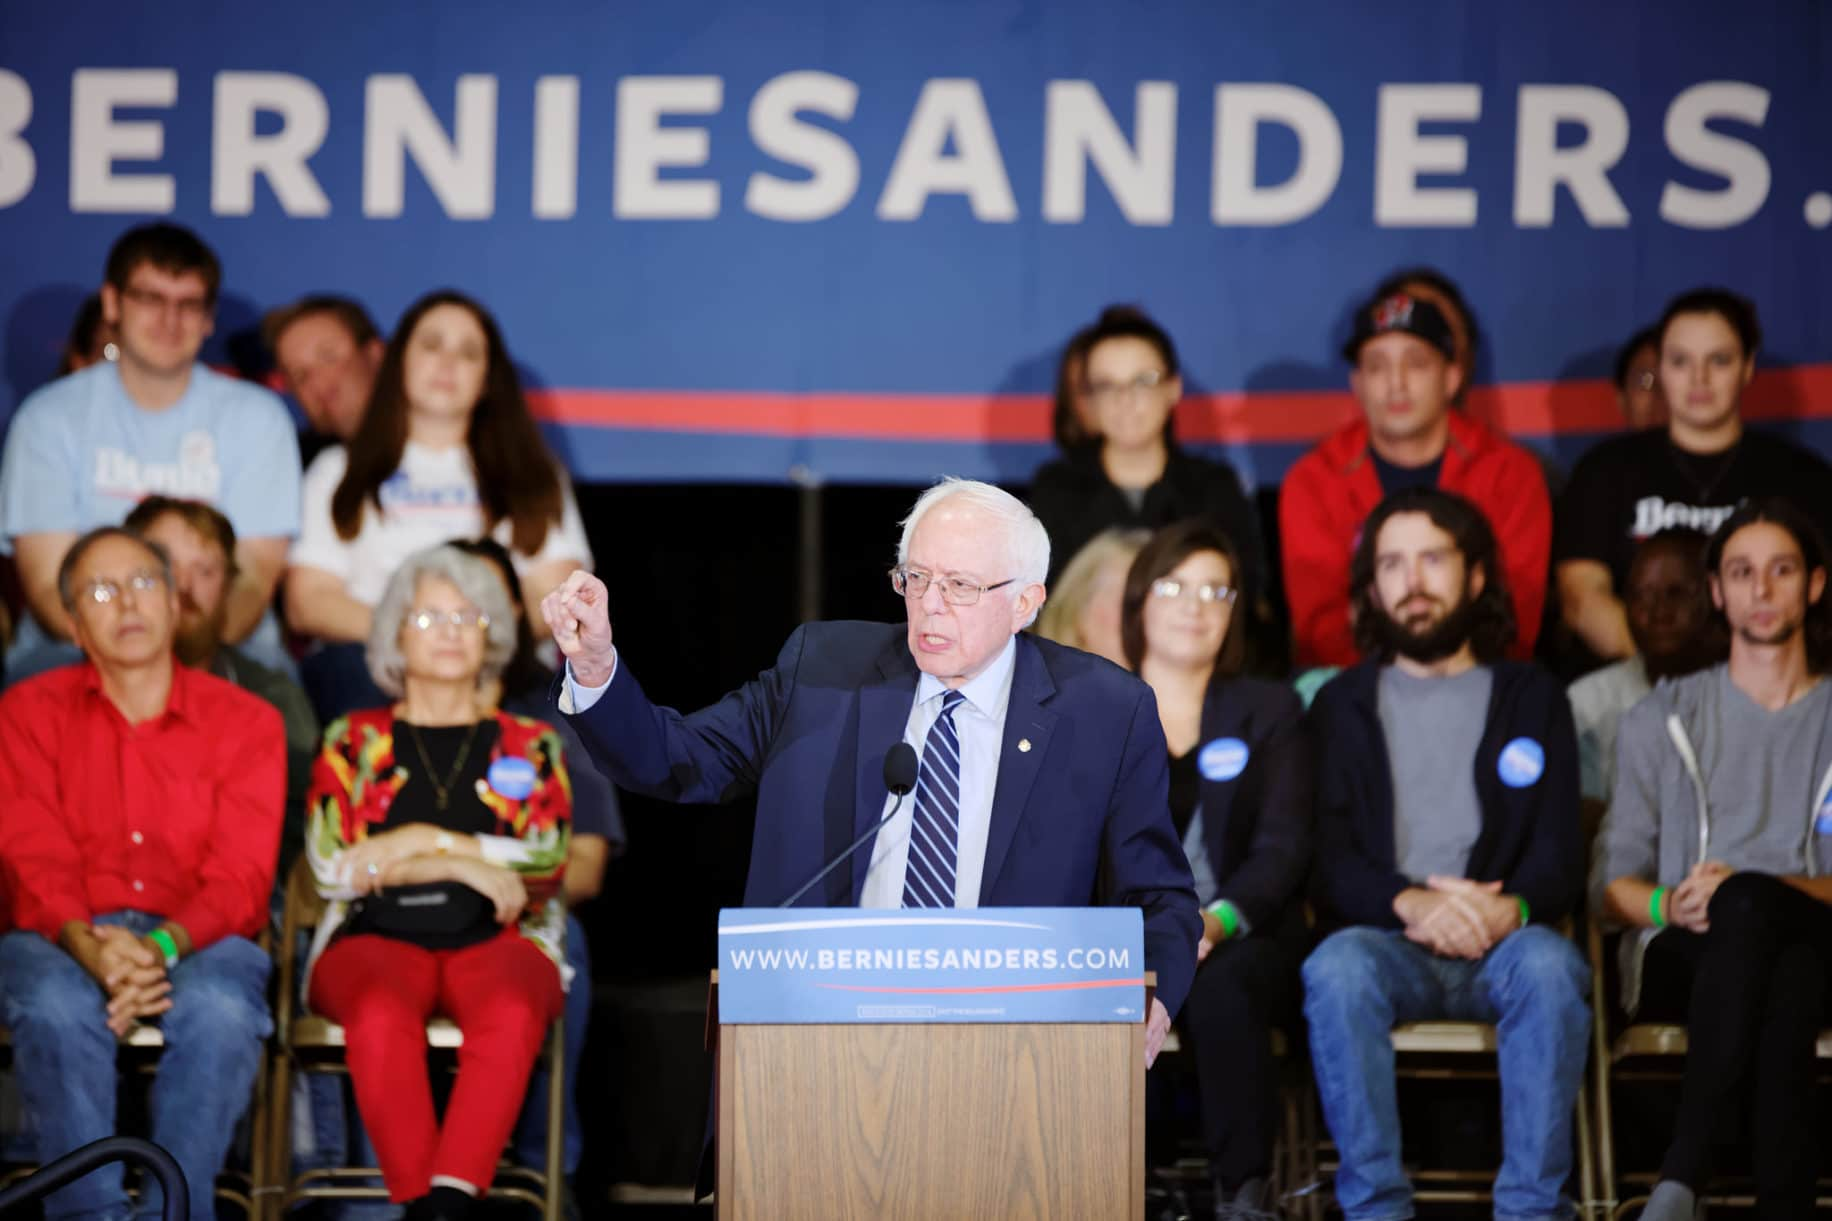 U.S. Senator Bernie Sanders (D-VT) at a town hall in Derry, NH on 10/30/15. Photo credit: Michael Vadon